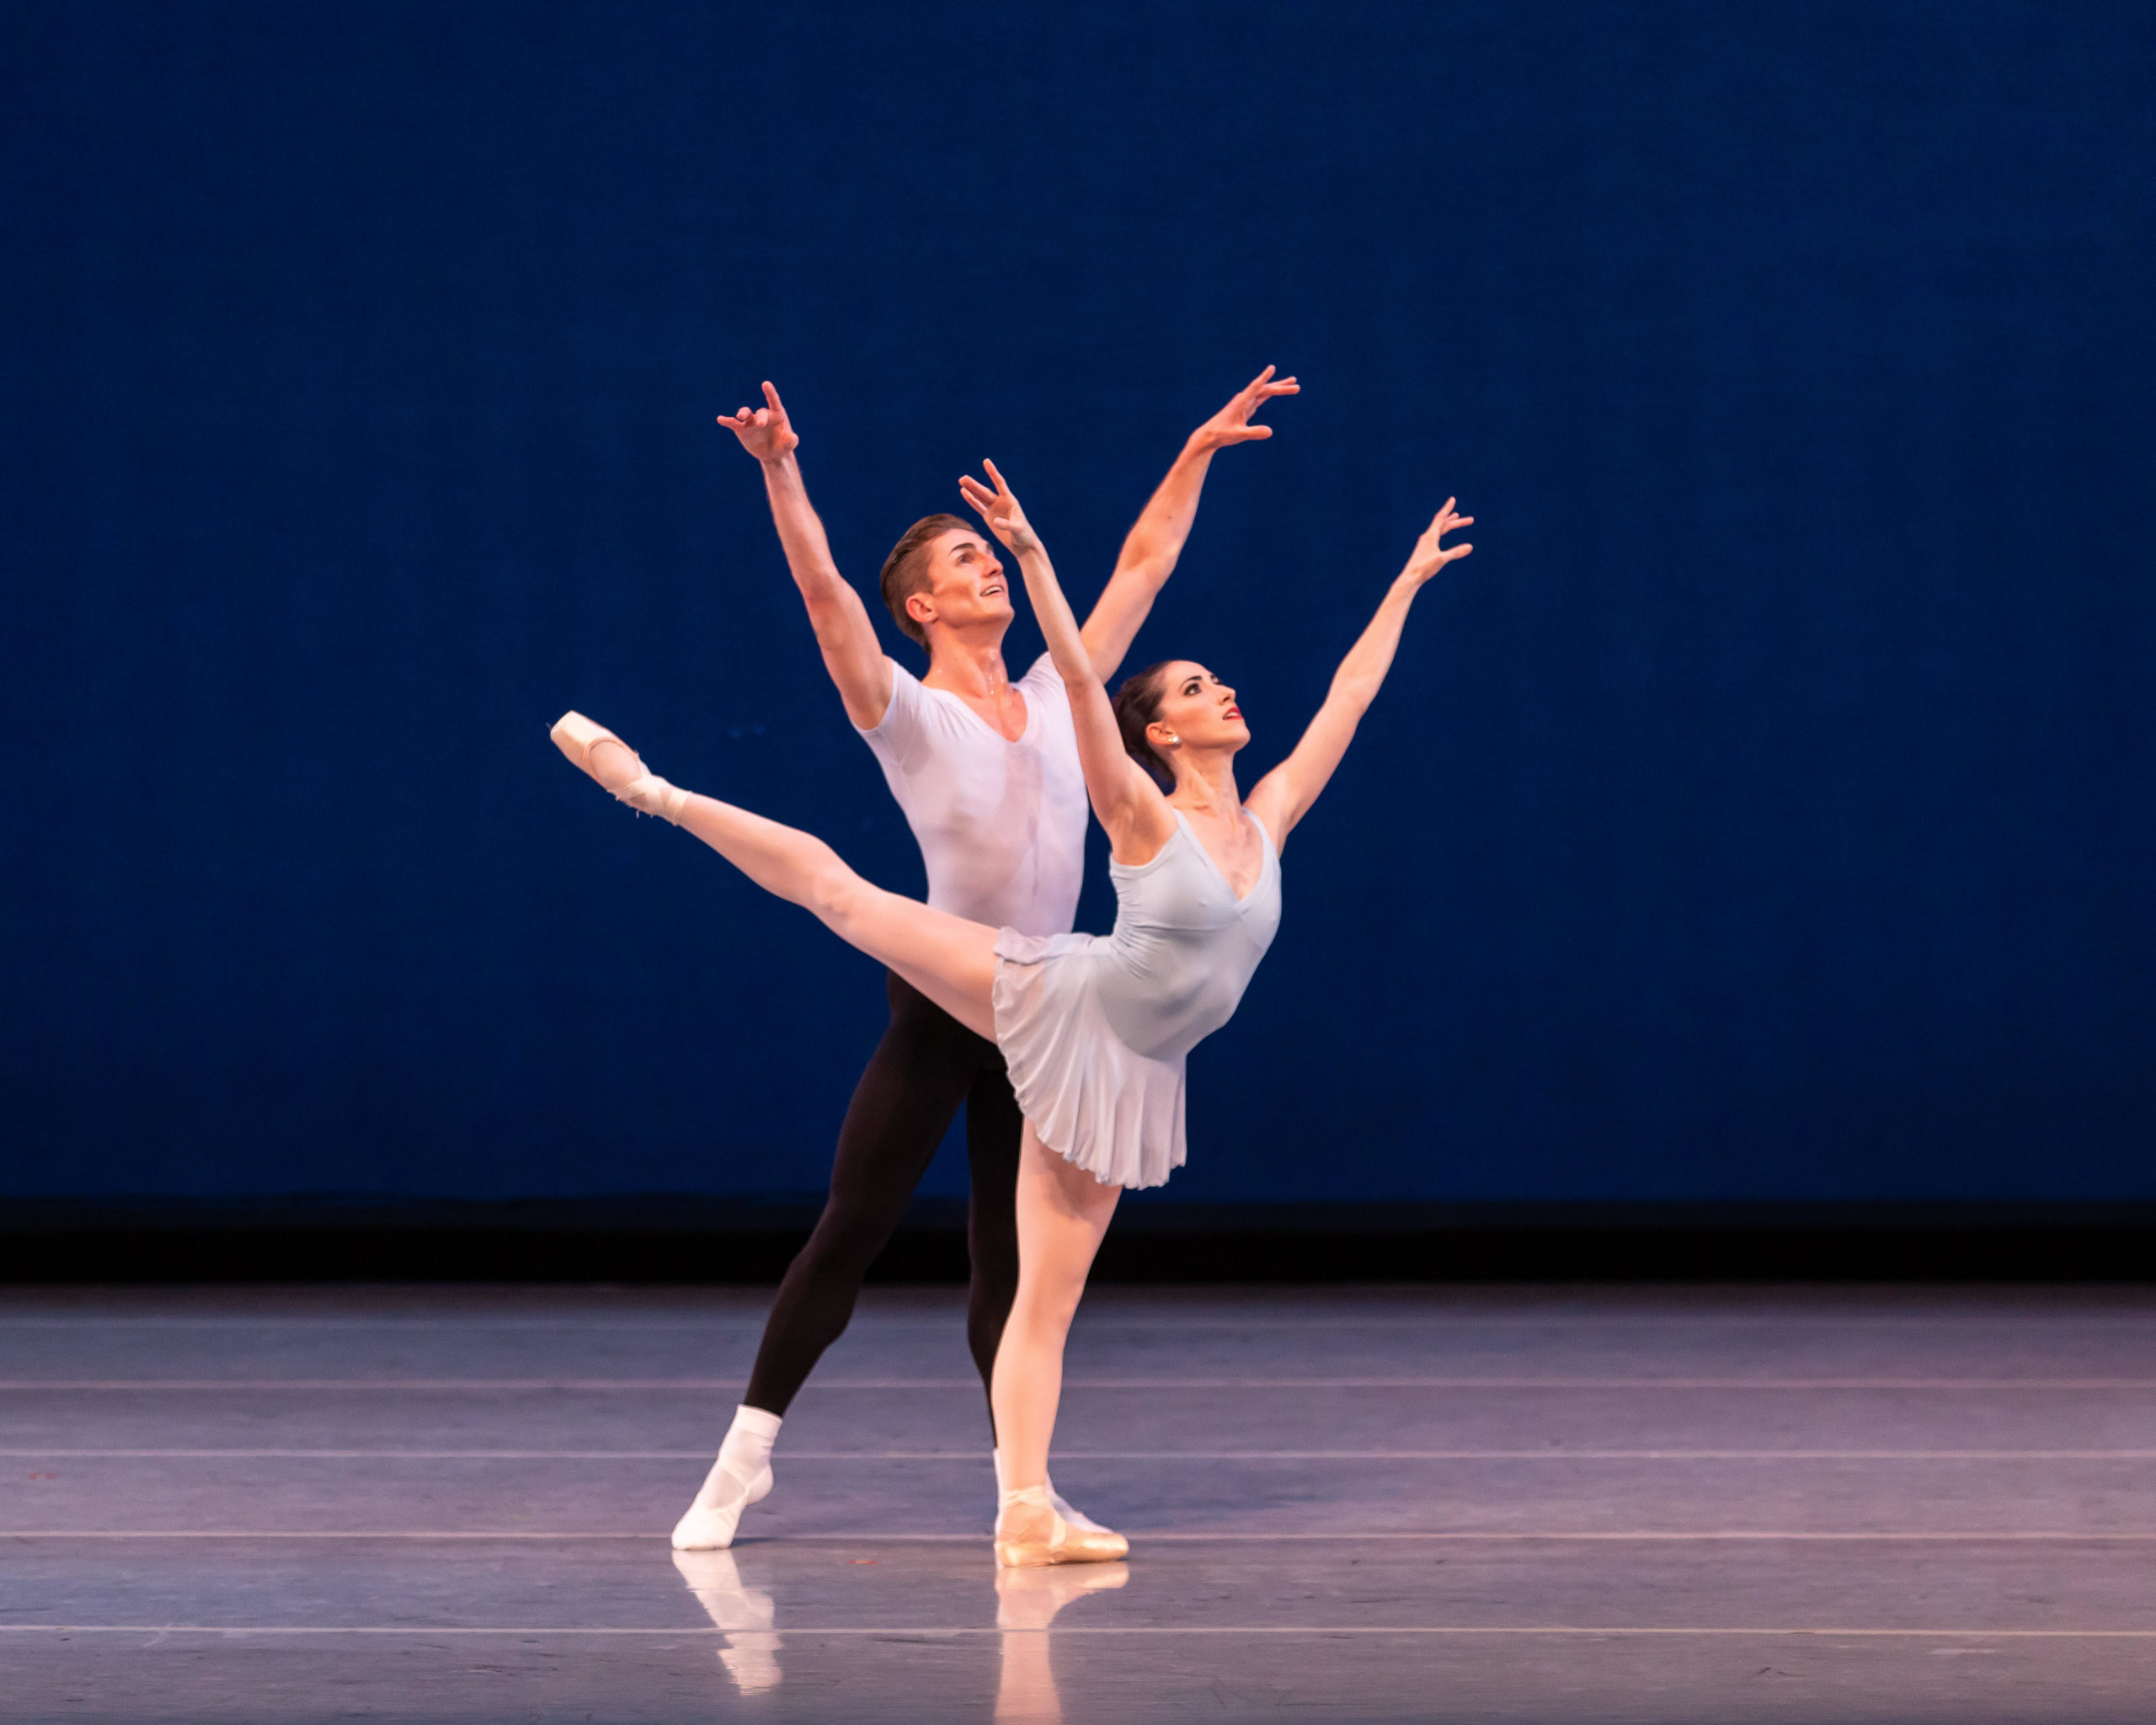 Julia Eisen stands onstage in a blue leotard and short chiffon skirt. She holds an arabesque on flat with her arms in open fifth. Behind her, Nicolas Scheuer reflects the position, also with his arms in open fifth, and both his feet on the ground.